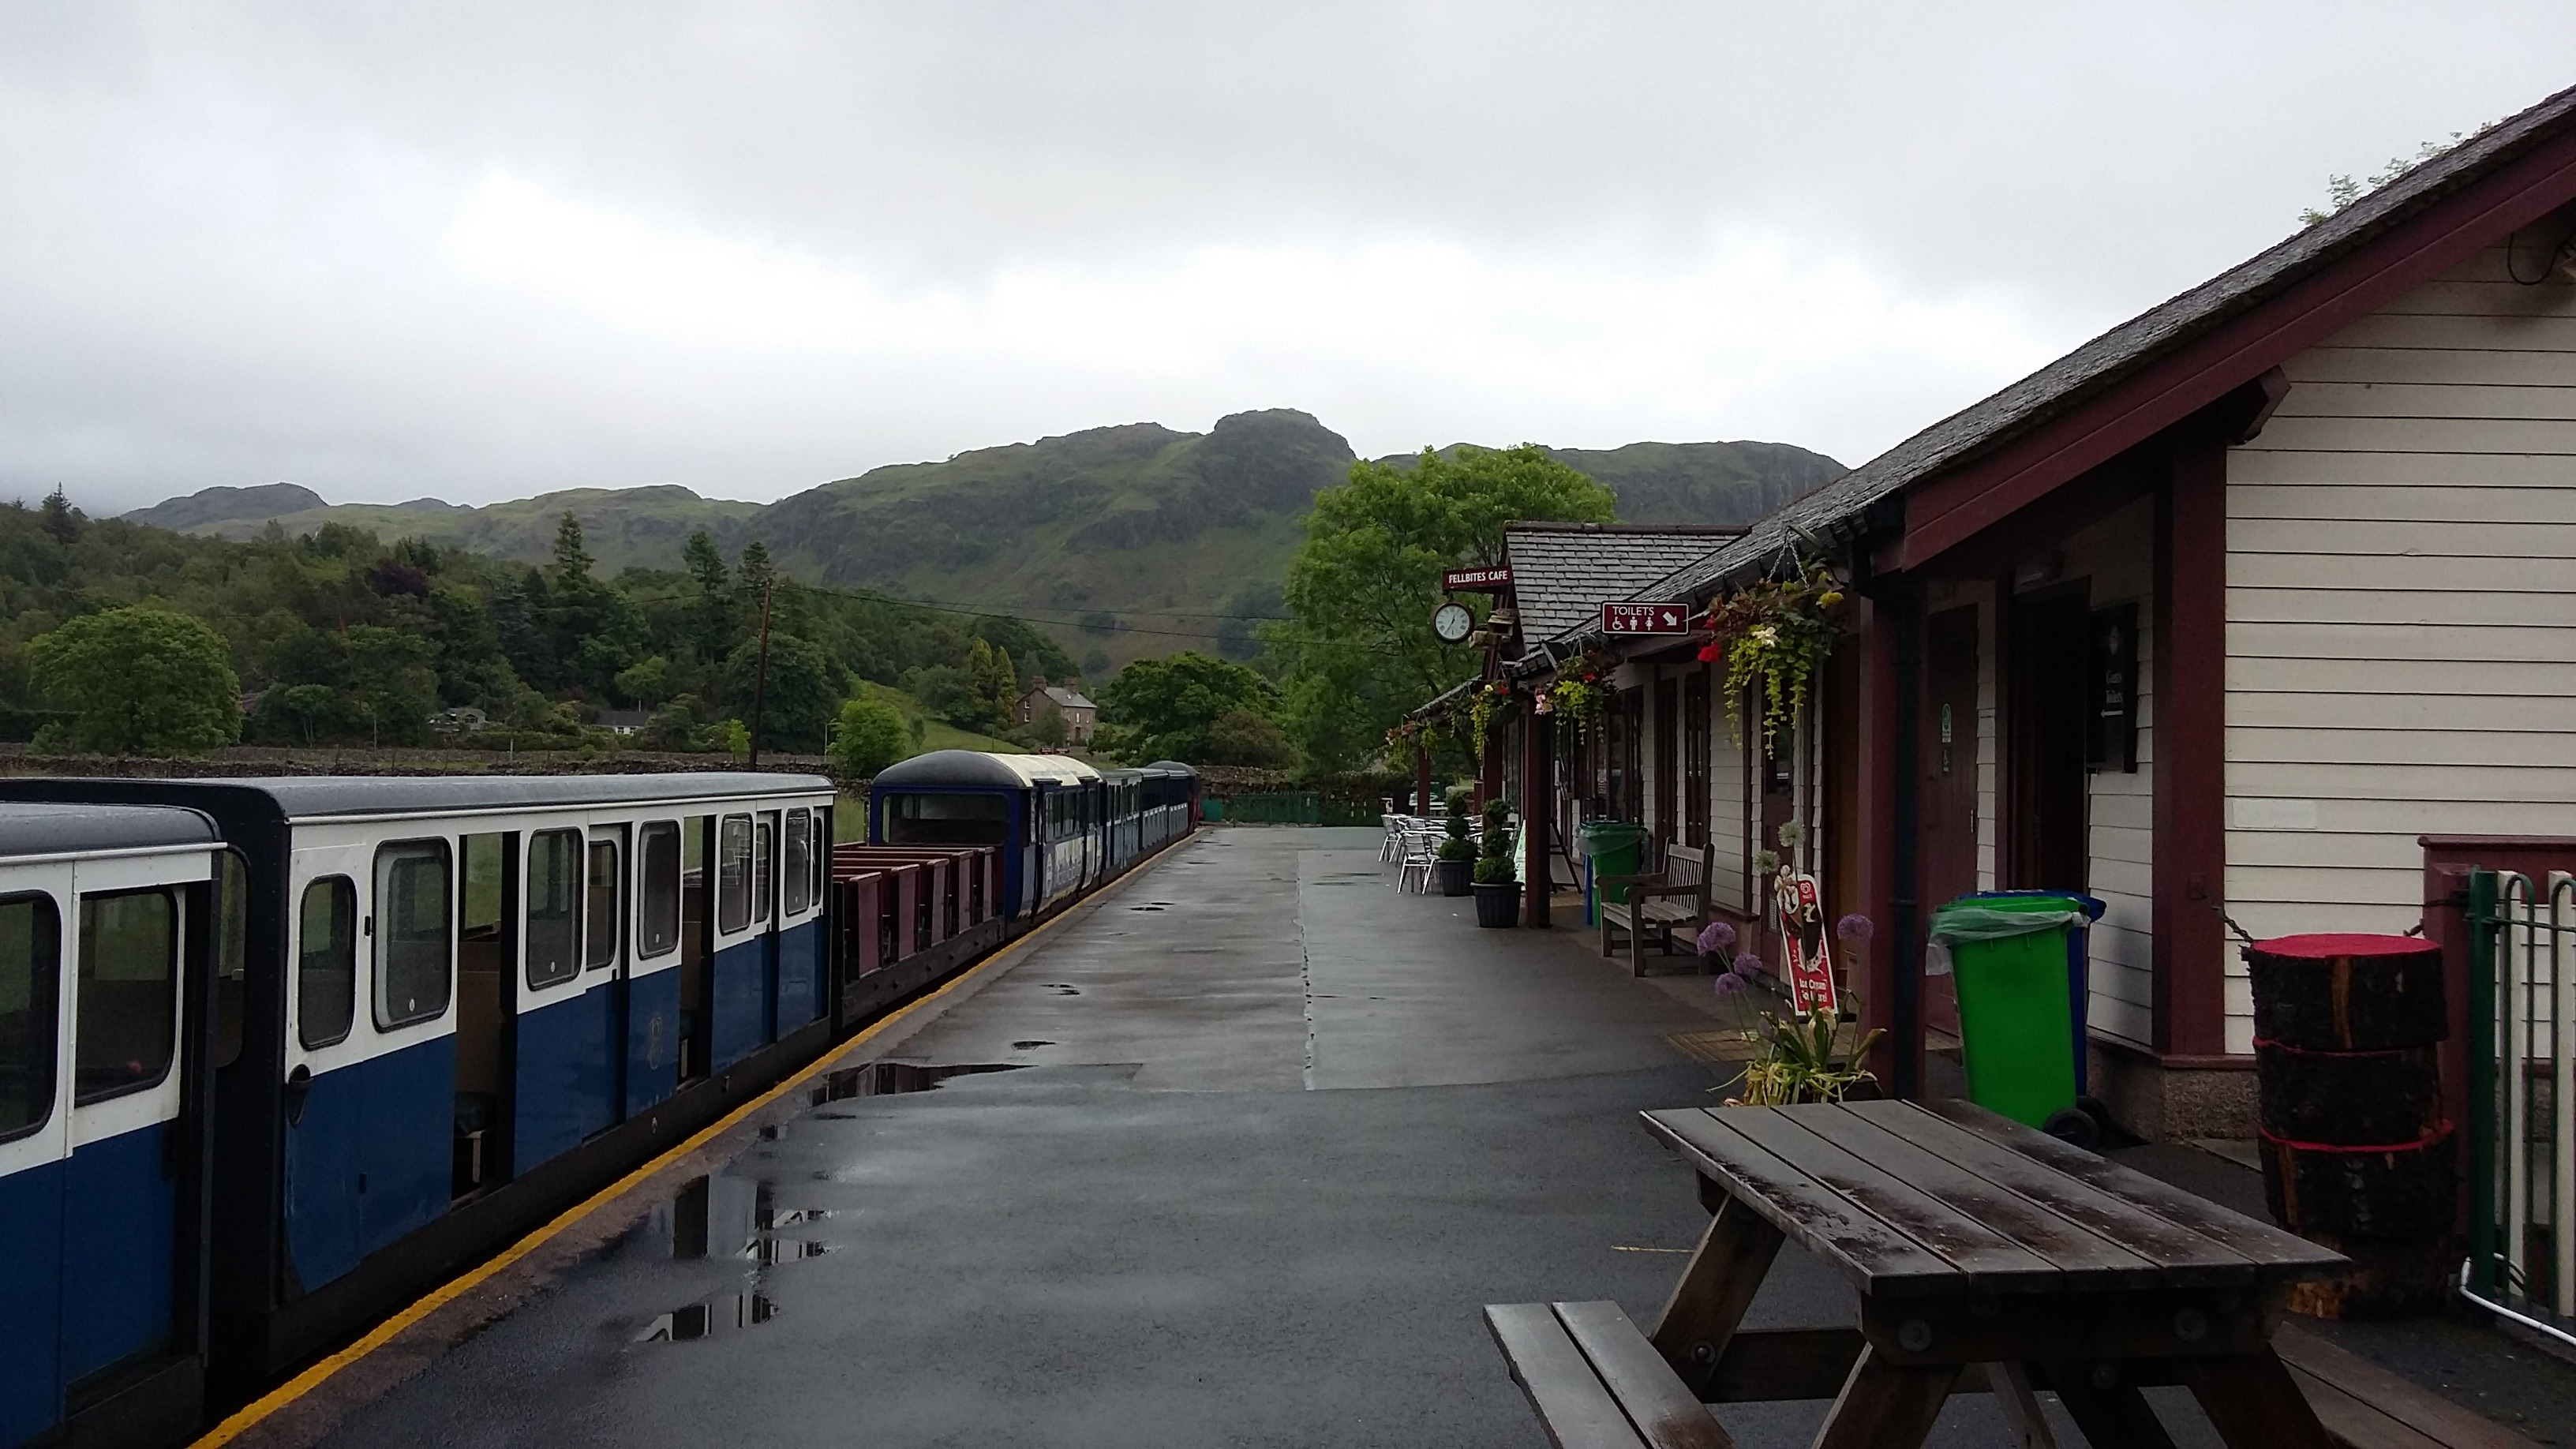 On the platform at Eskdale